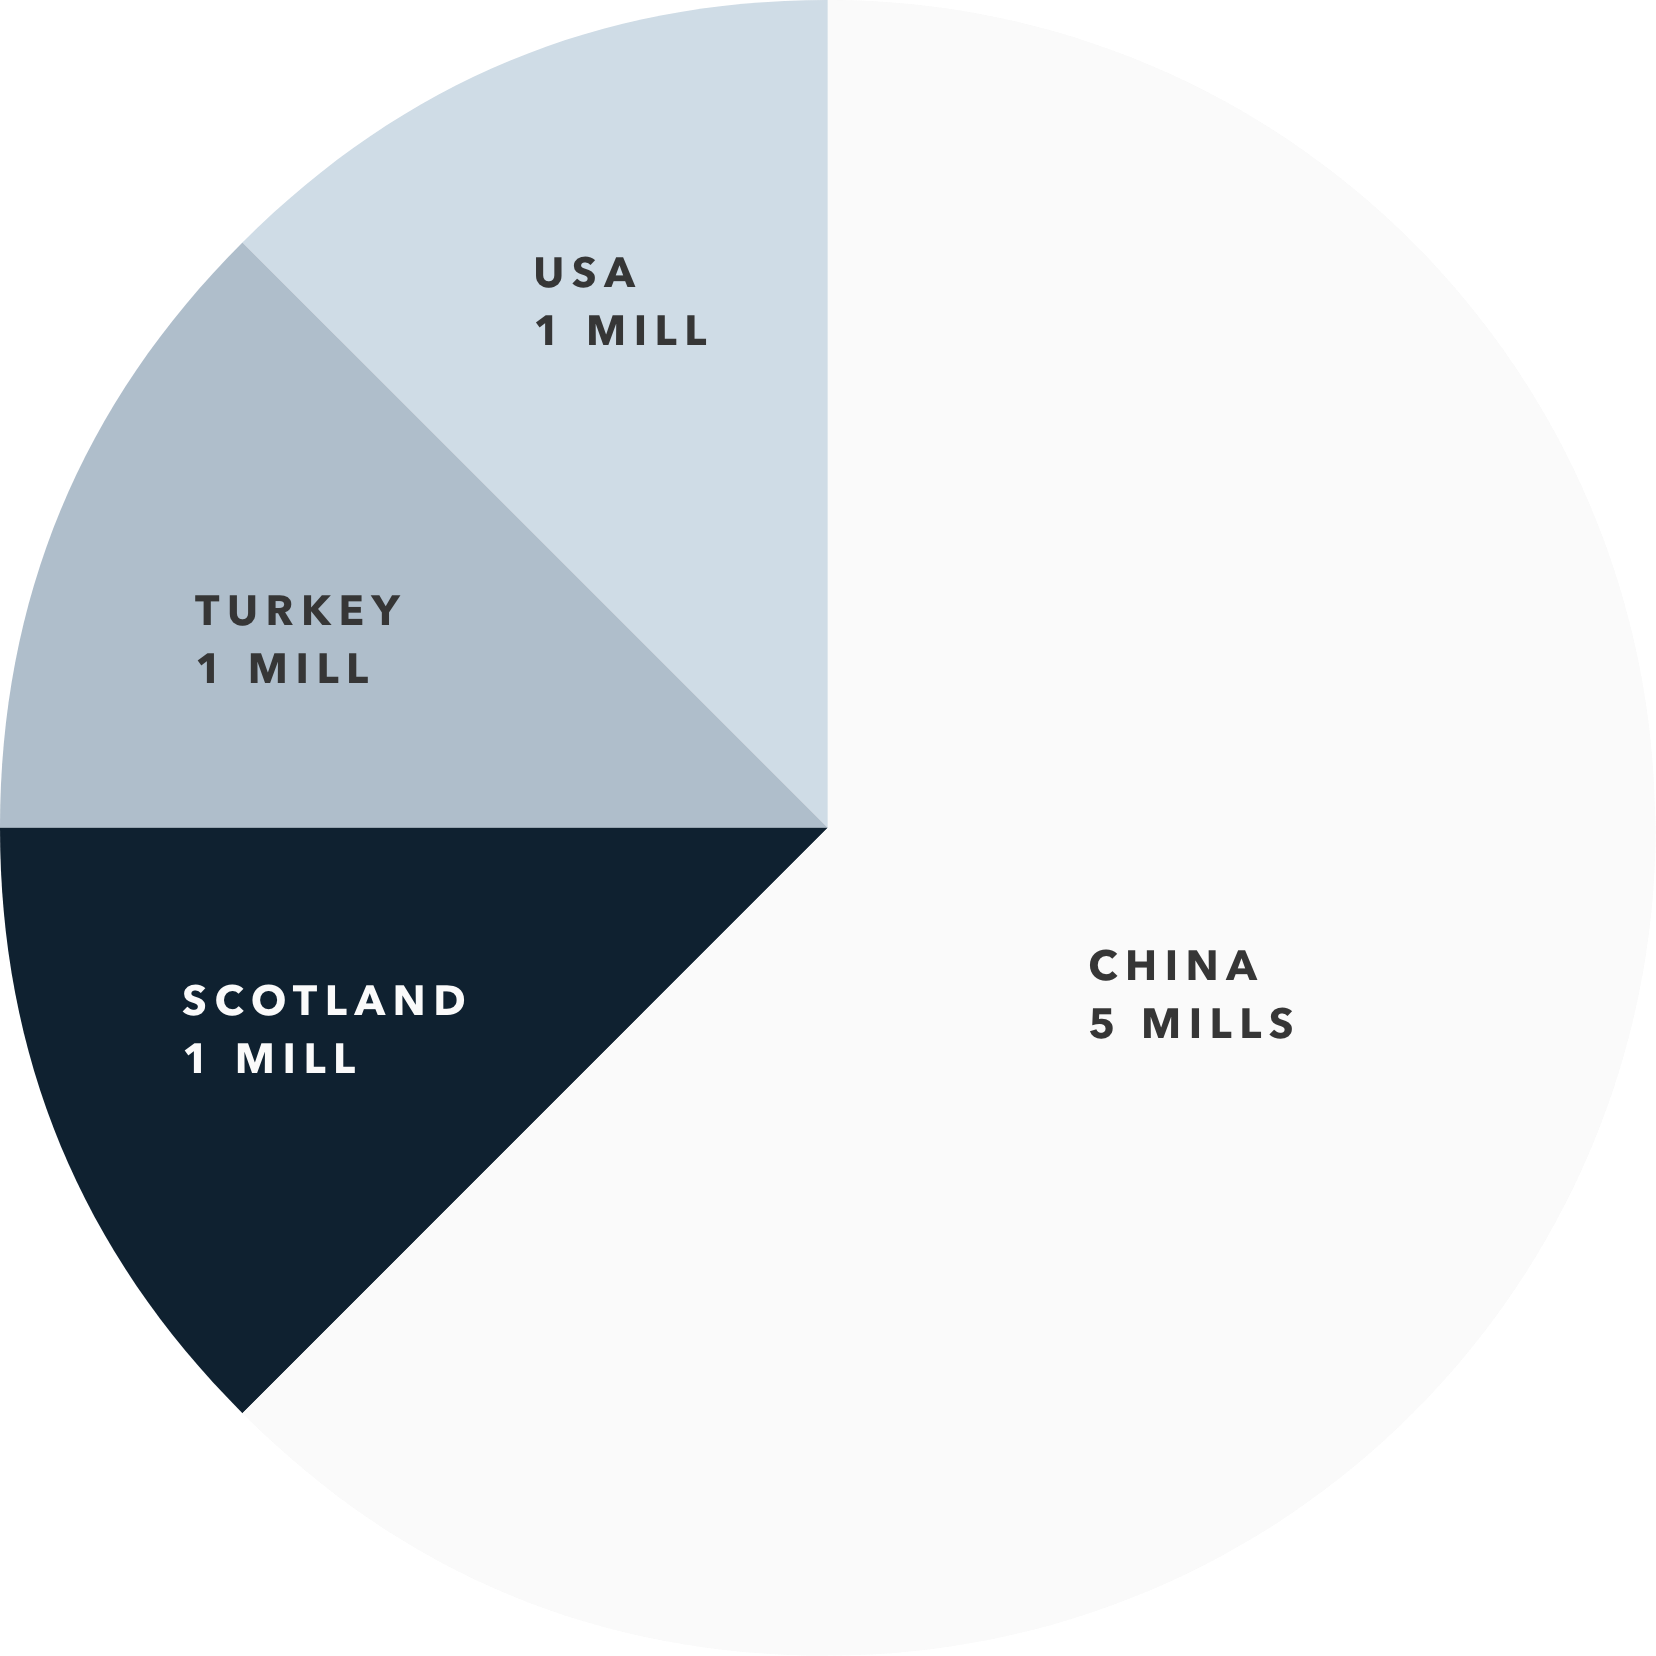 Mills: China (5), Turkey (1), Scotland (1), USA (1)